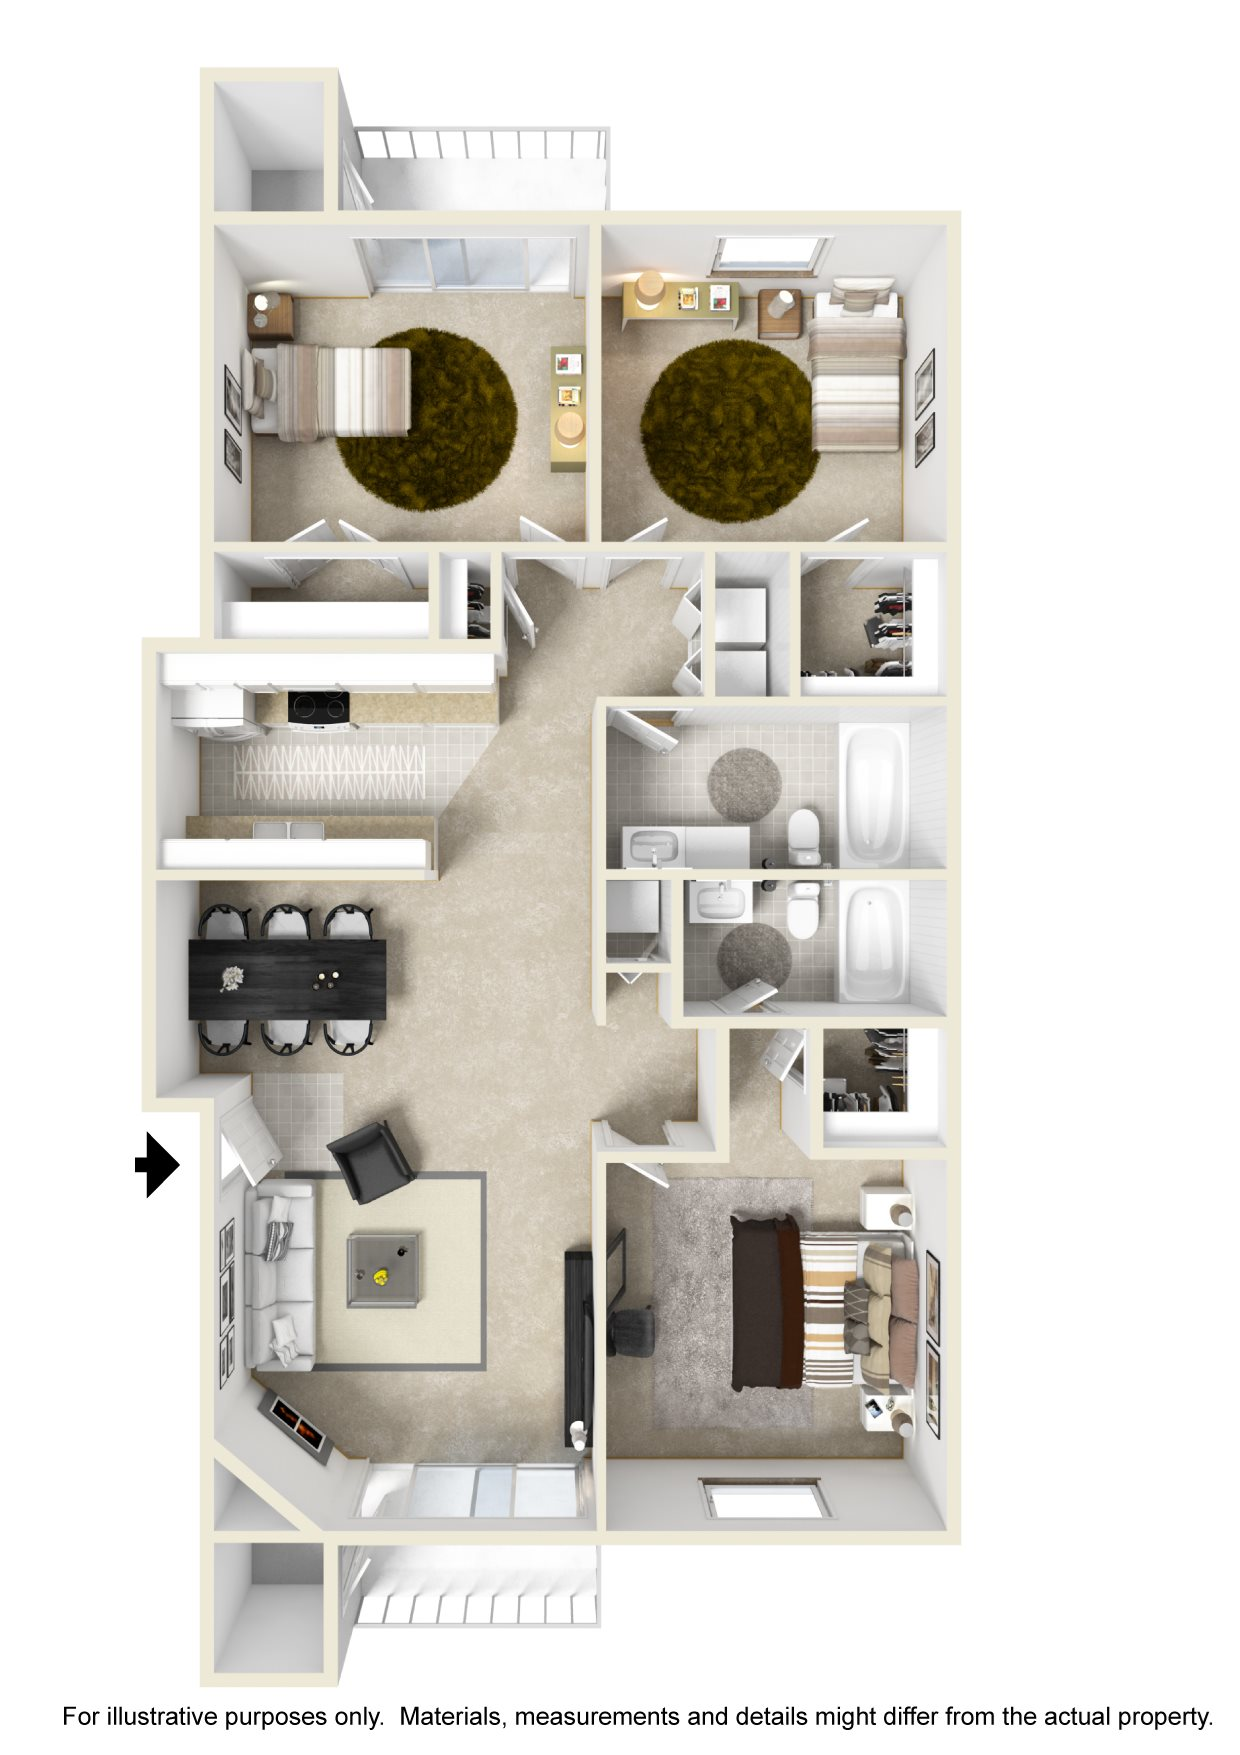 3 Bedroom Floor Plan (1280 sqft)